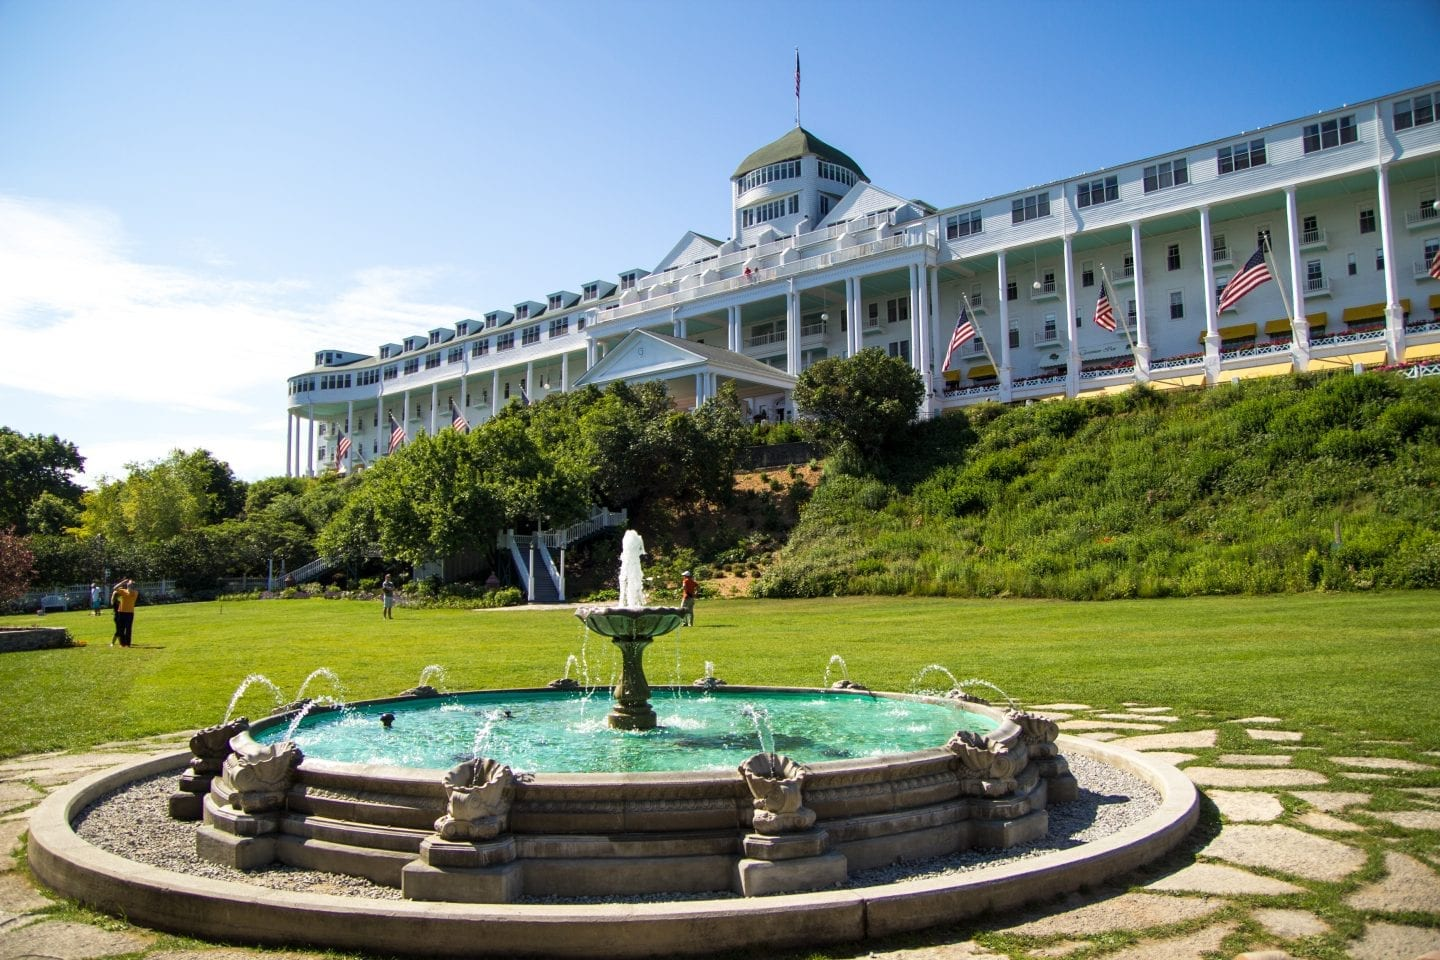 Mackinac island pictures